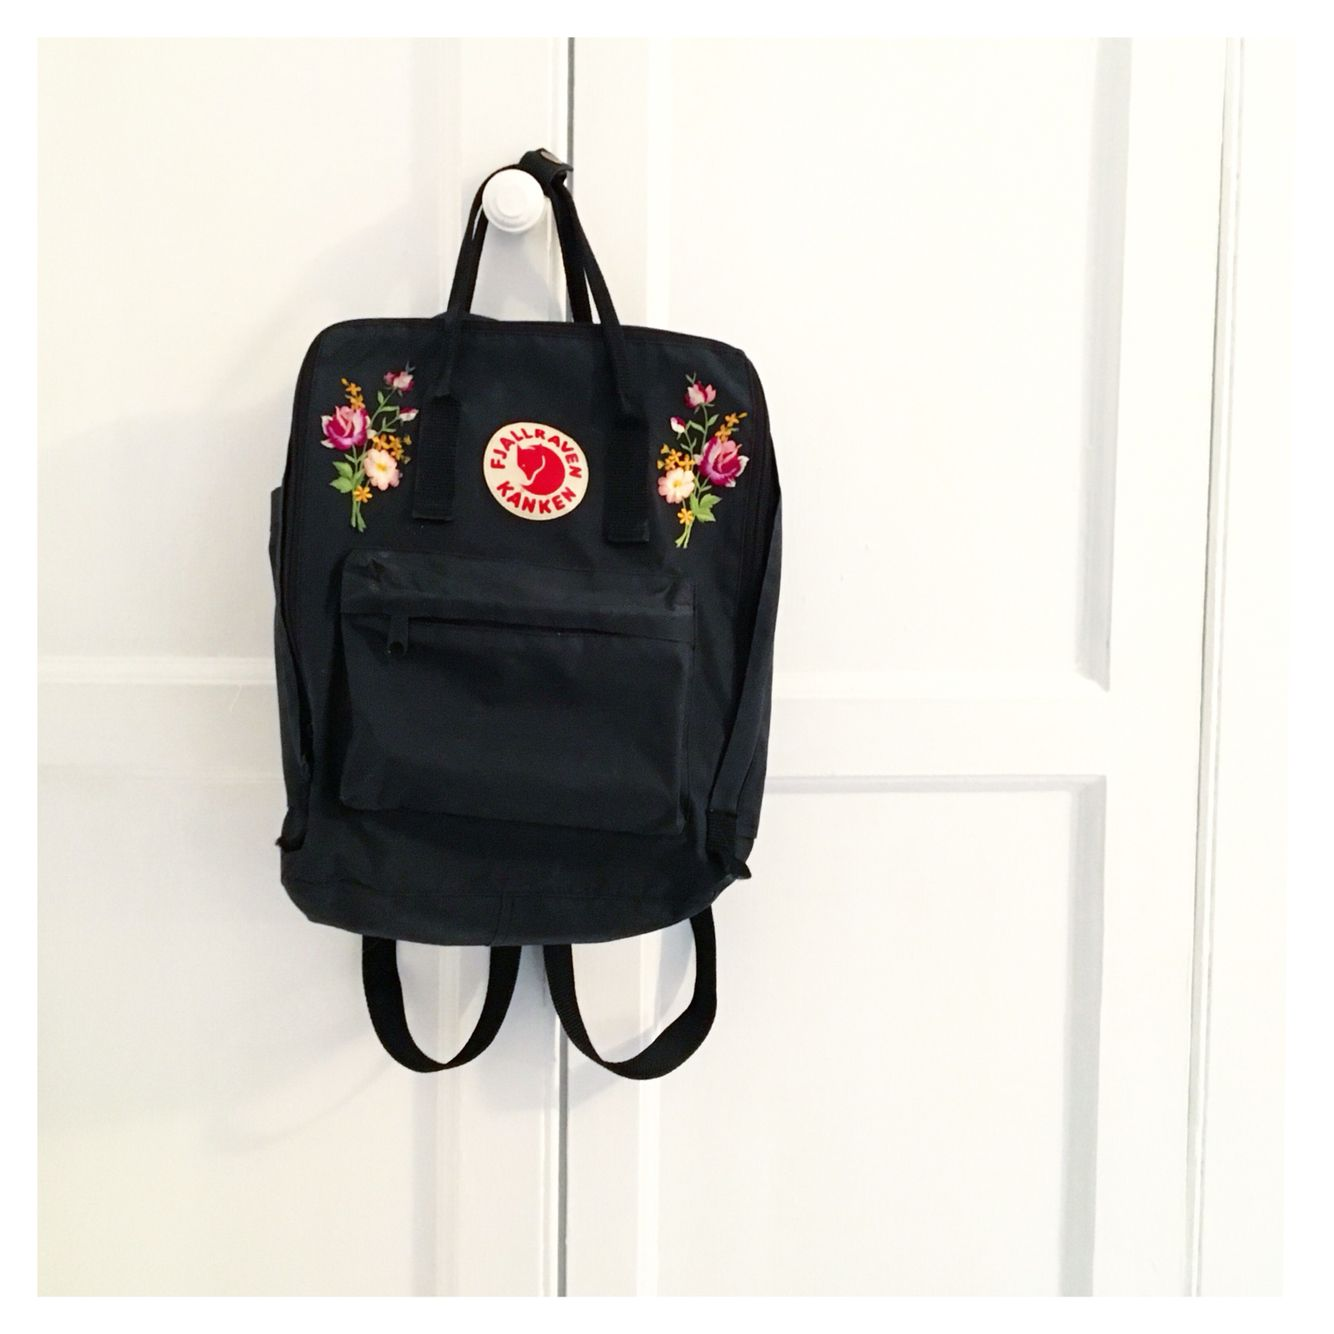 Pimped My Fjallraven Kanken With Floral Embroidery Patches Flower Power!